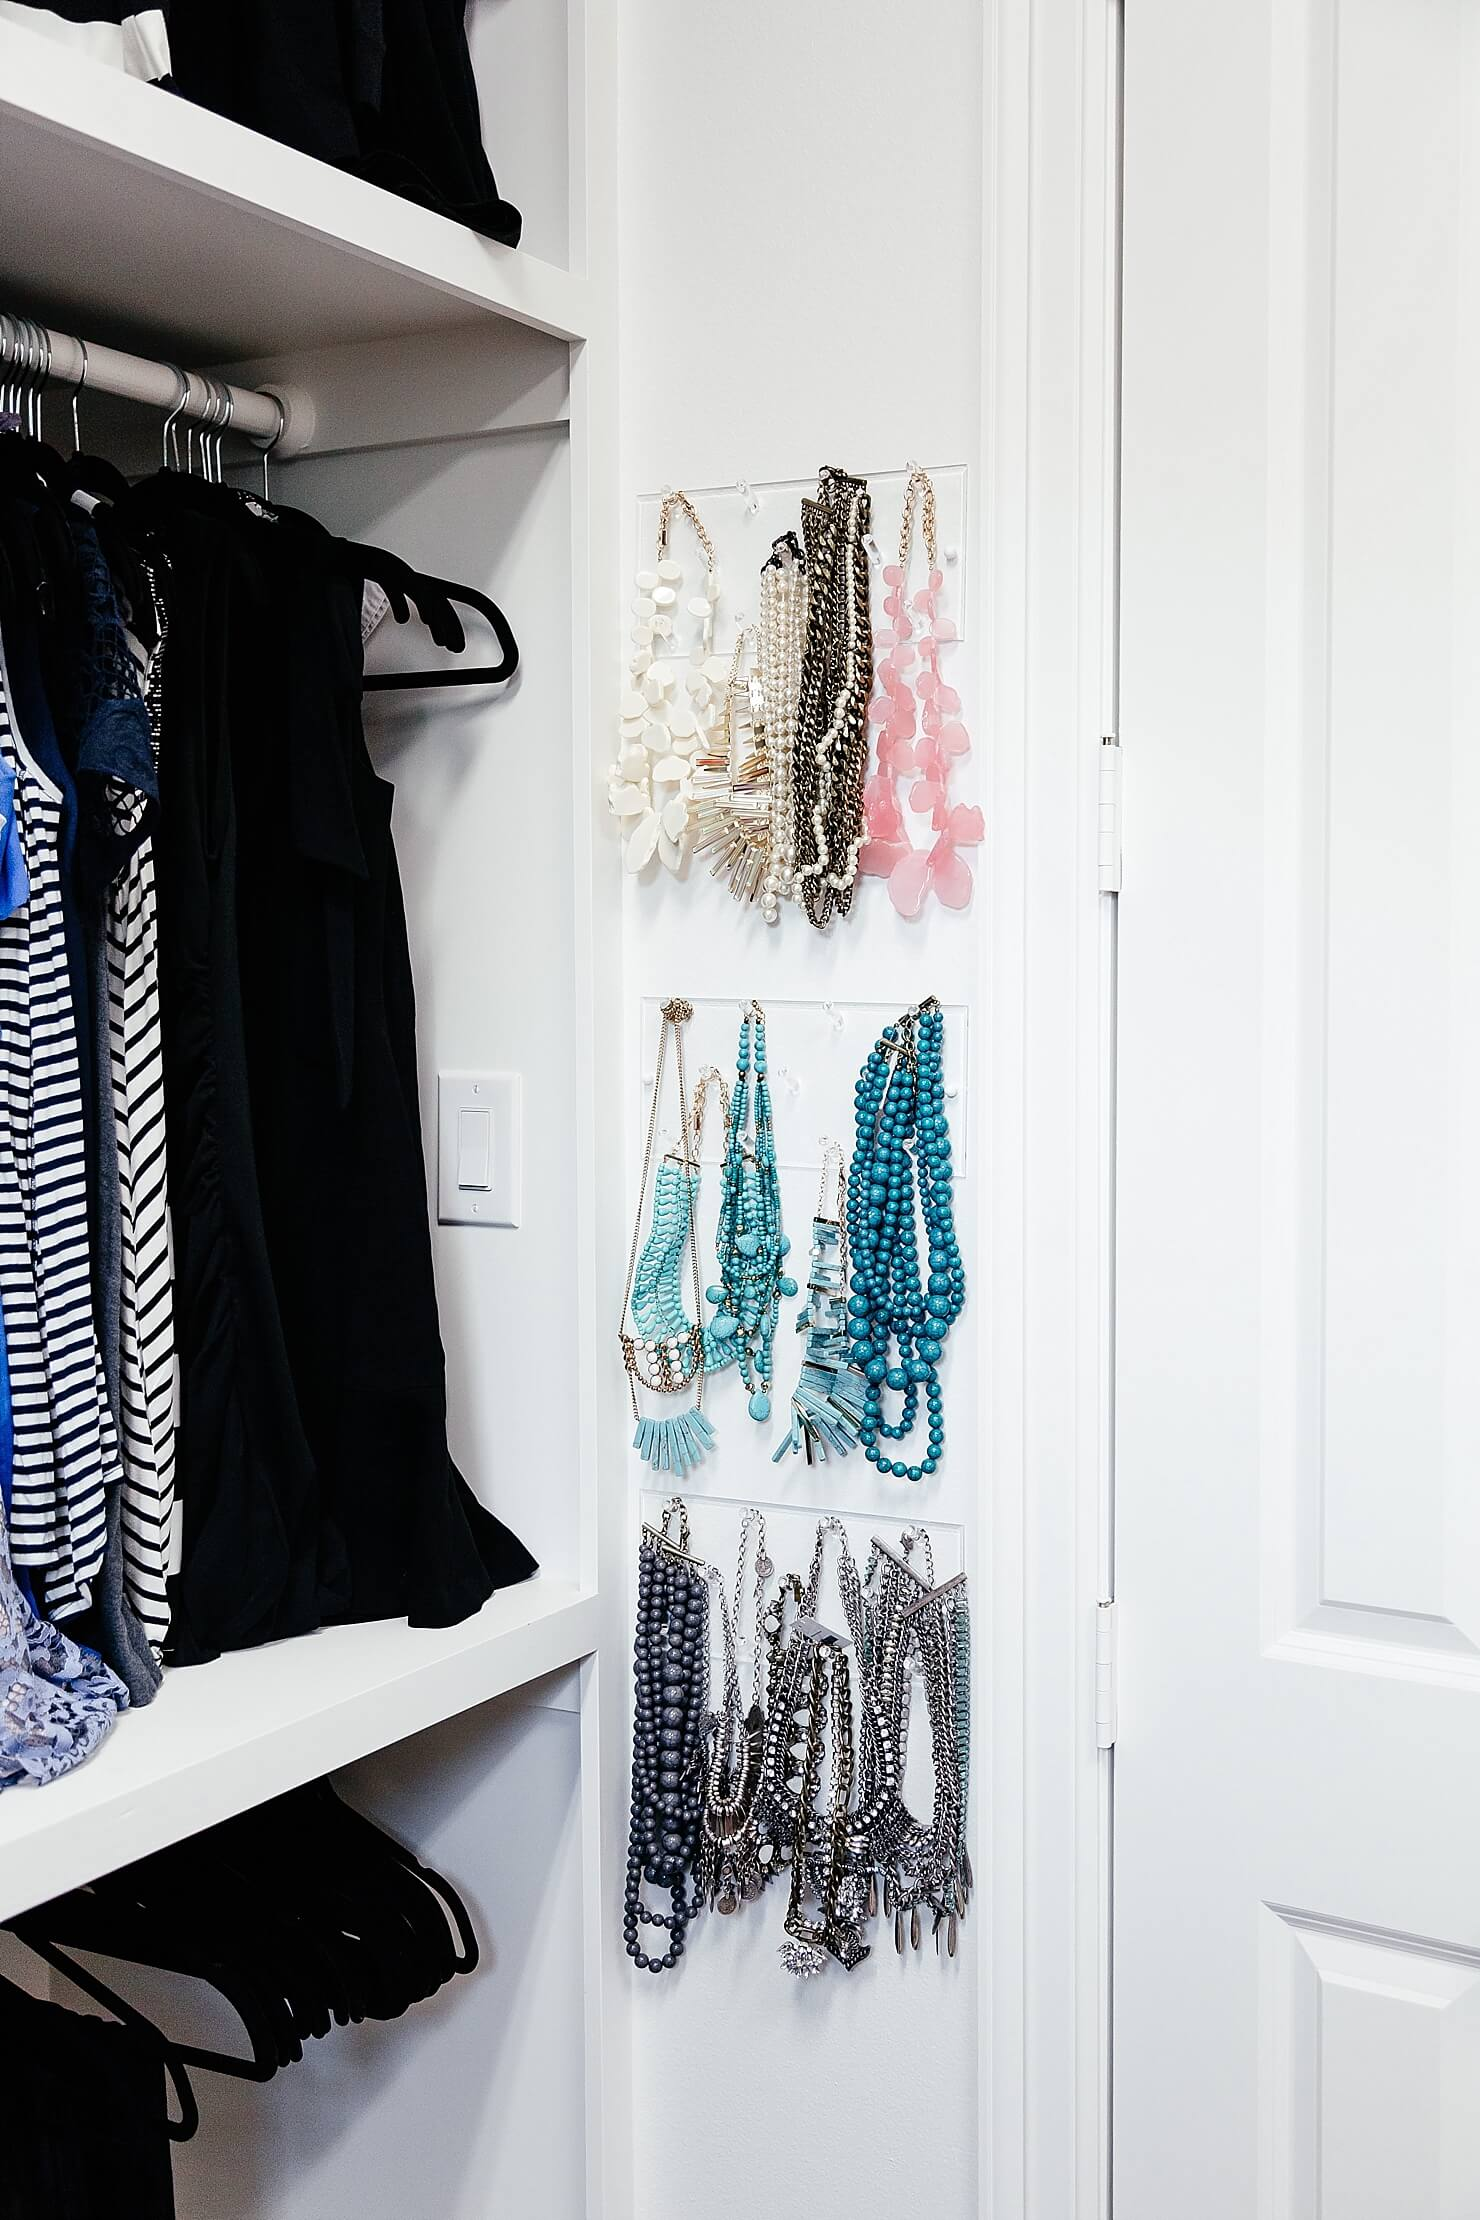 brighton keller new home closet reveal jewelry organization